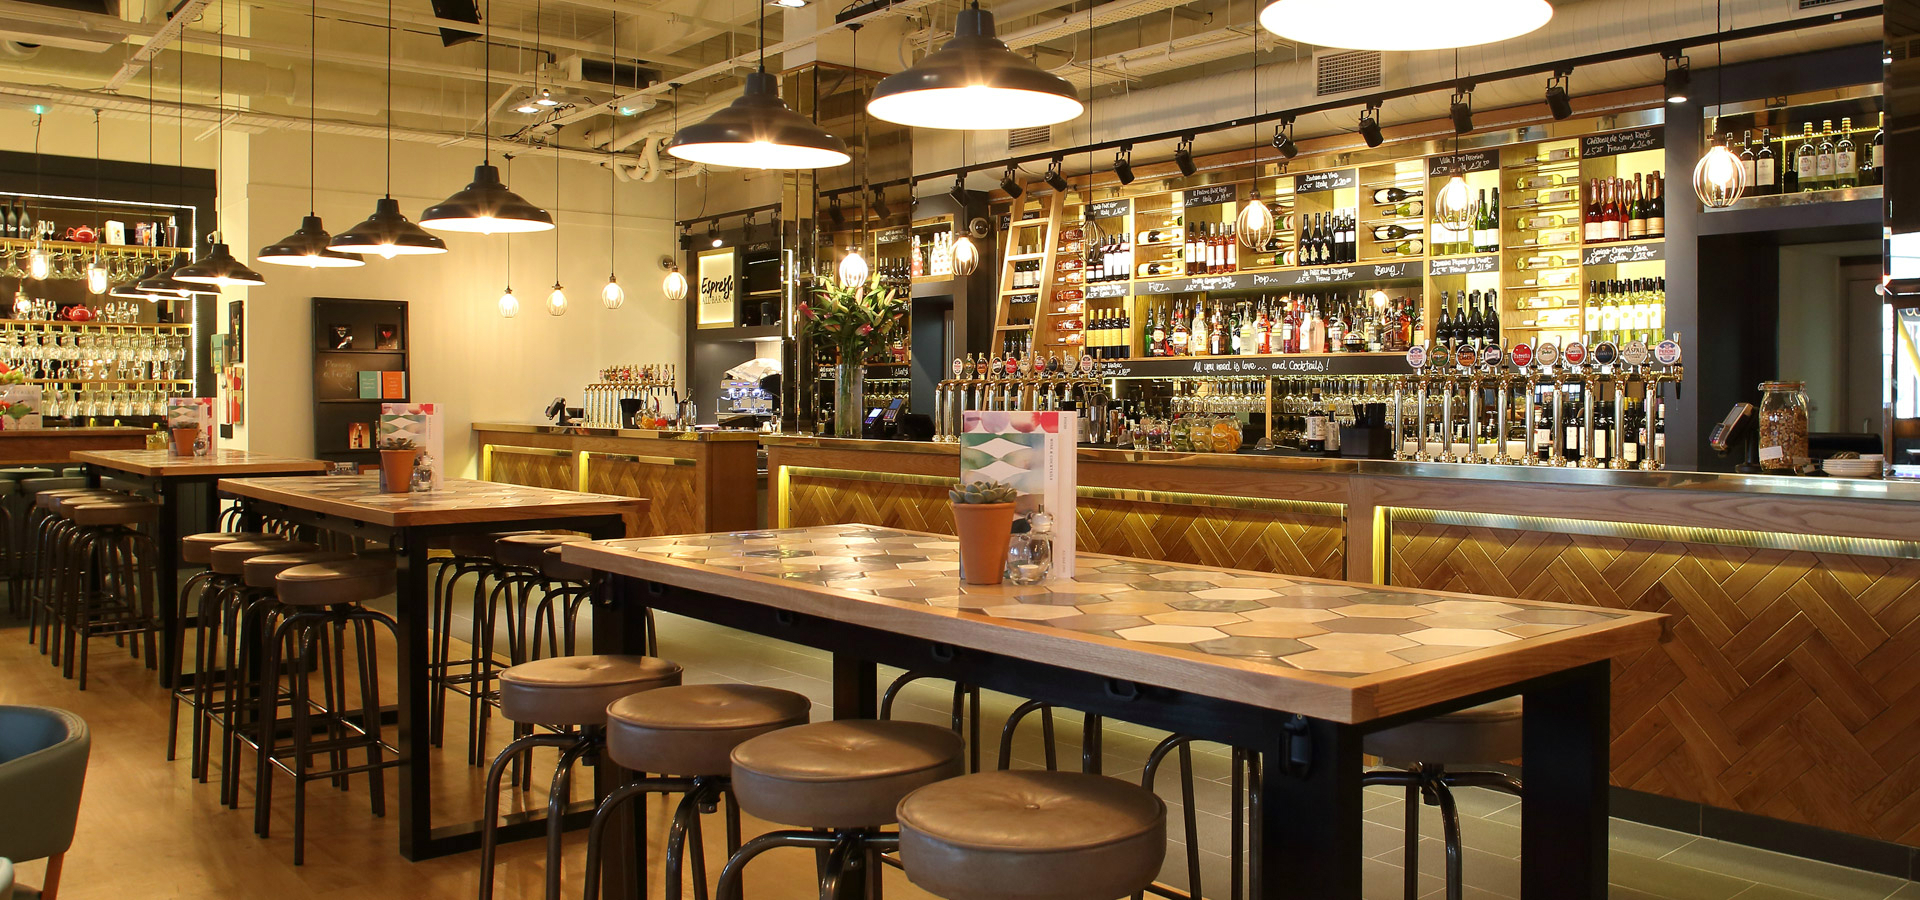 Check Out The Most Creative Trends At London S Restaurant And Bar Show Daily Design News